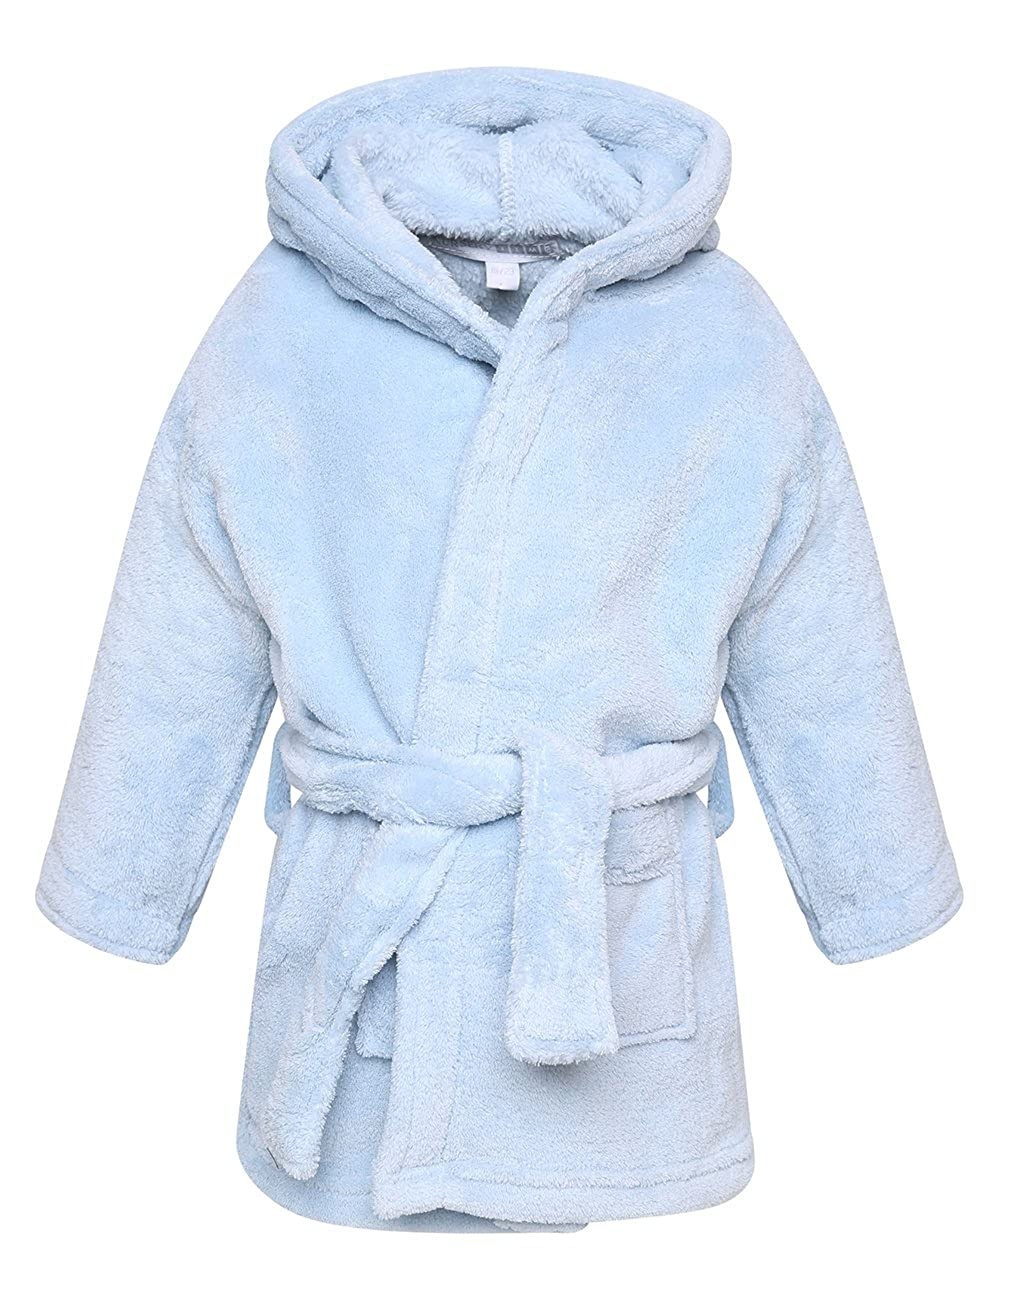 Baby Boys And Girls Unisex Fleece Hooded Dressing Gown Bath Robe Pink Blue White